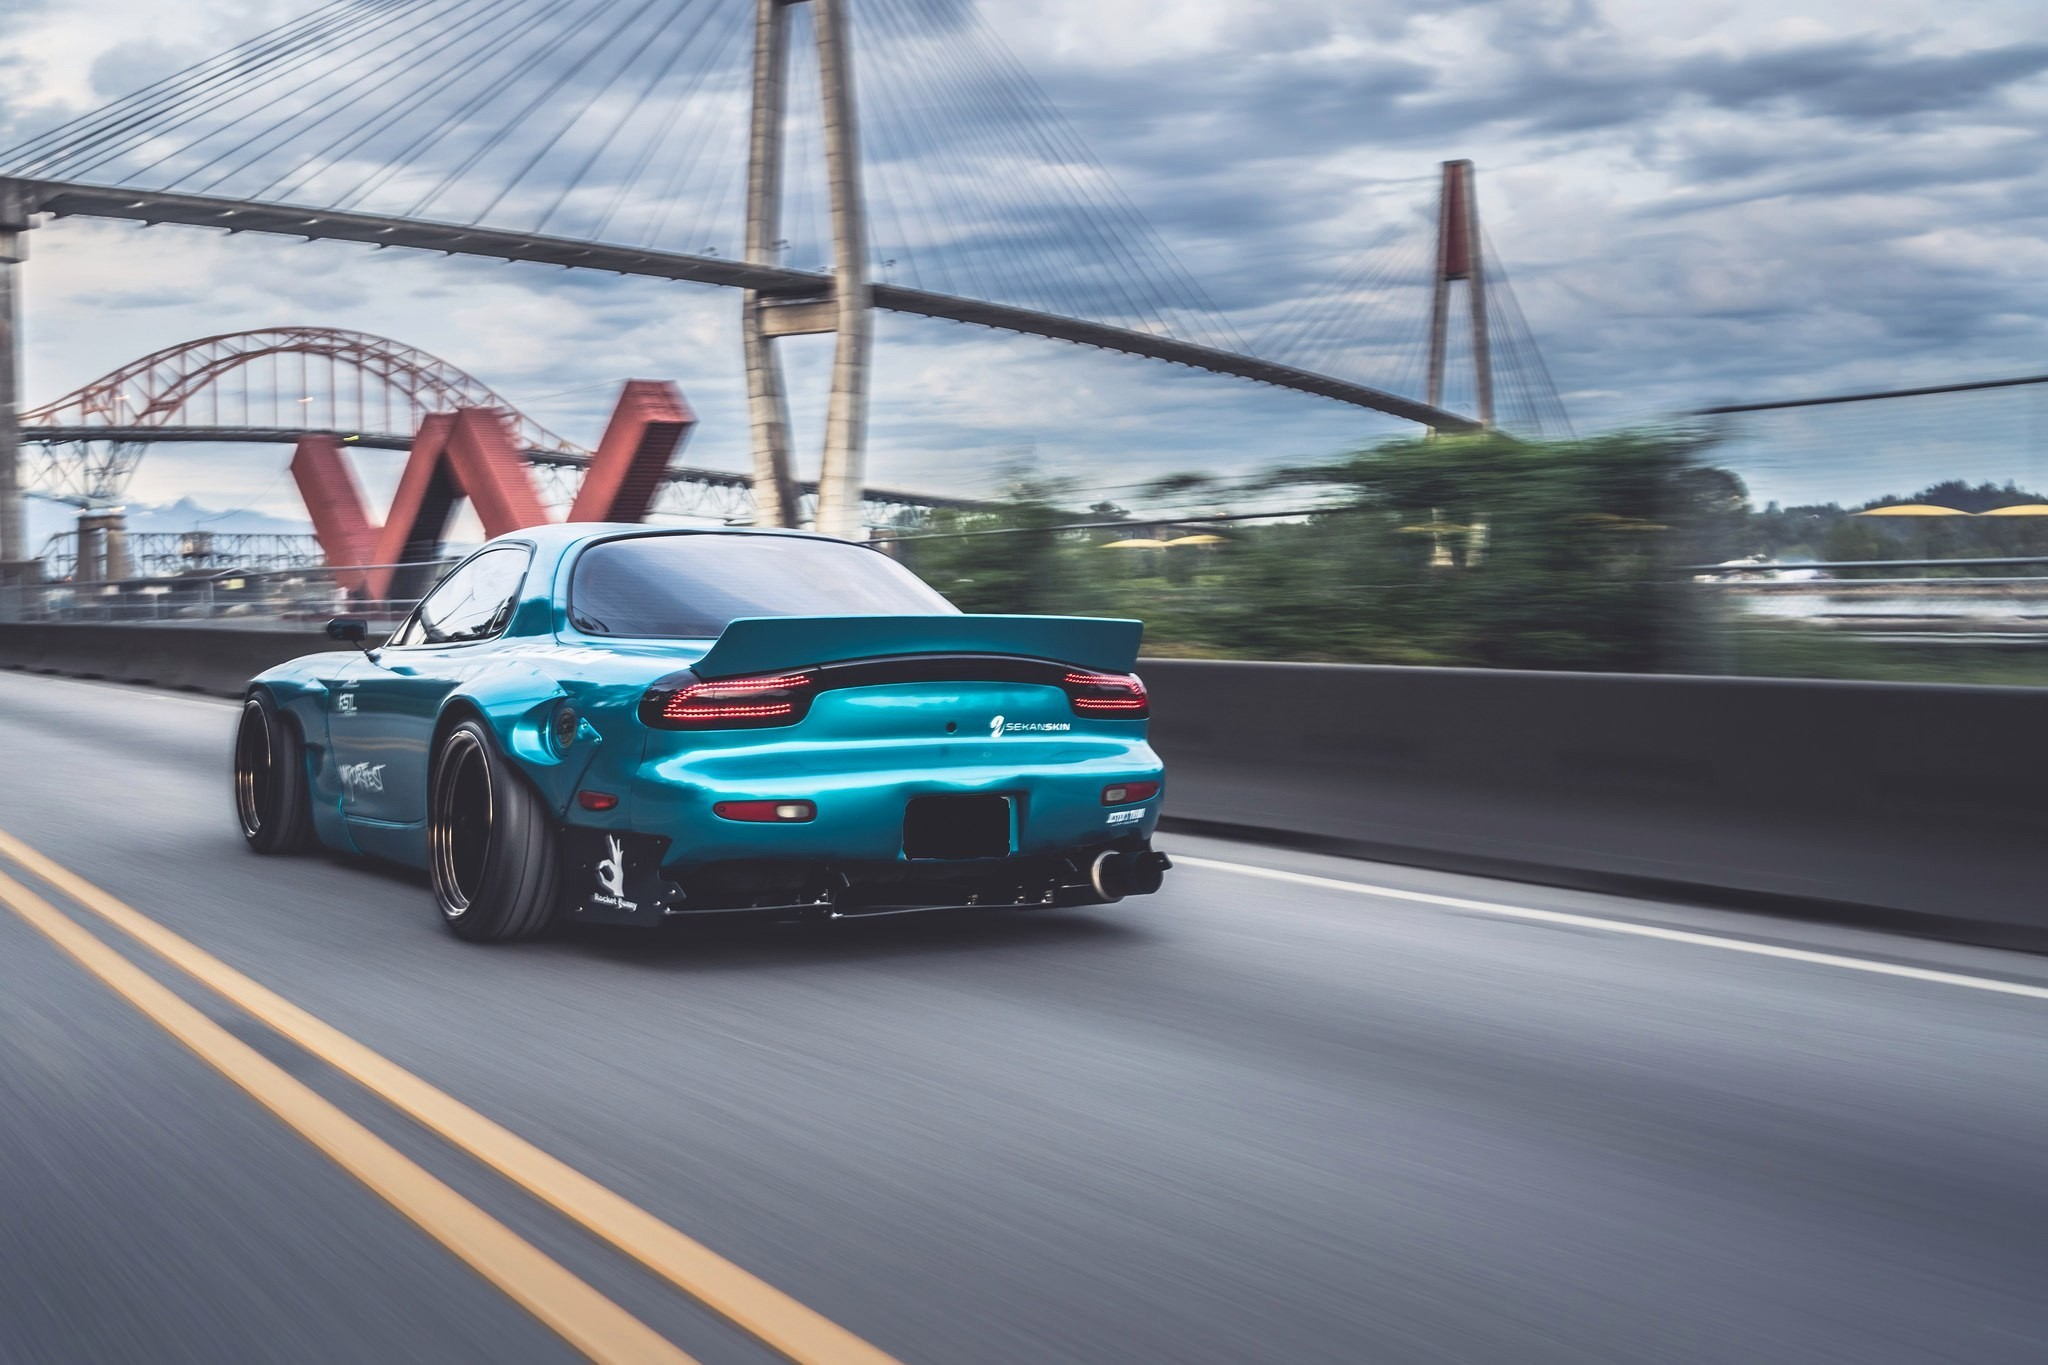 2048x1365 sports car, Mazda RX 7, Mazda, Blue cars, Bridge, Rocket Bunny Wallpapers  HD / Desktop and Mobile Backgrounds